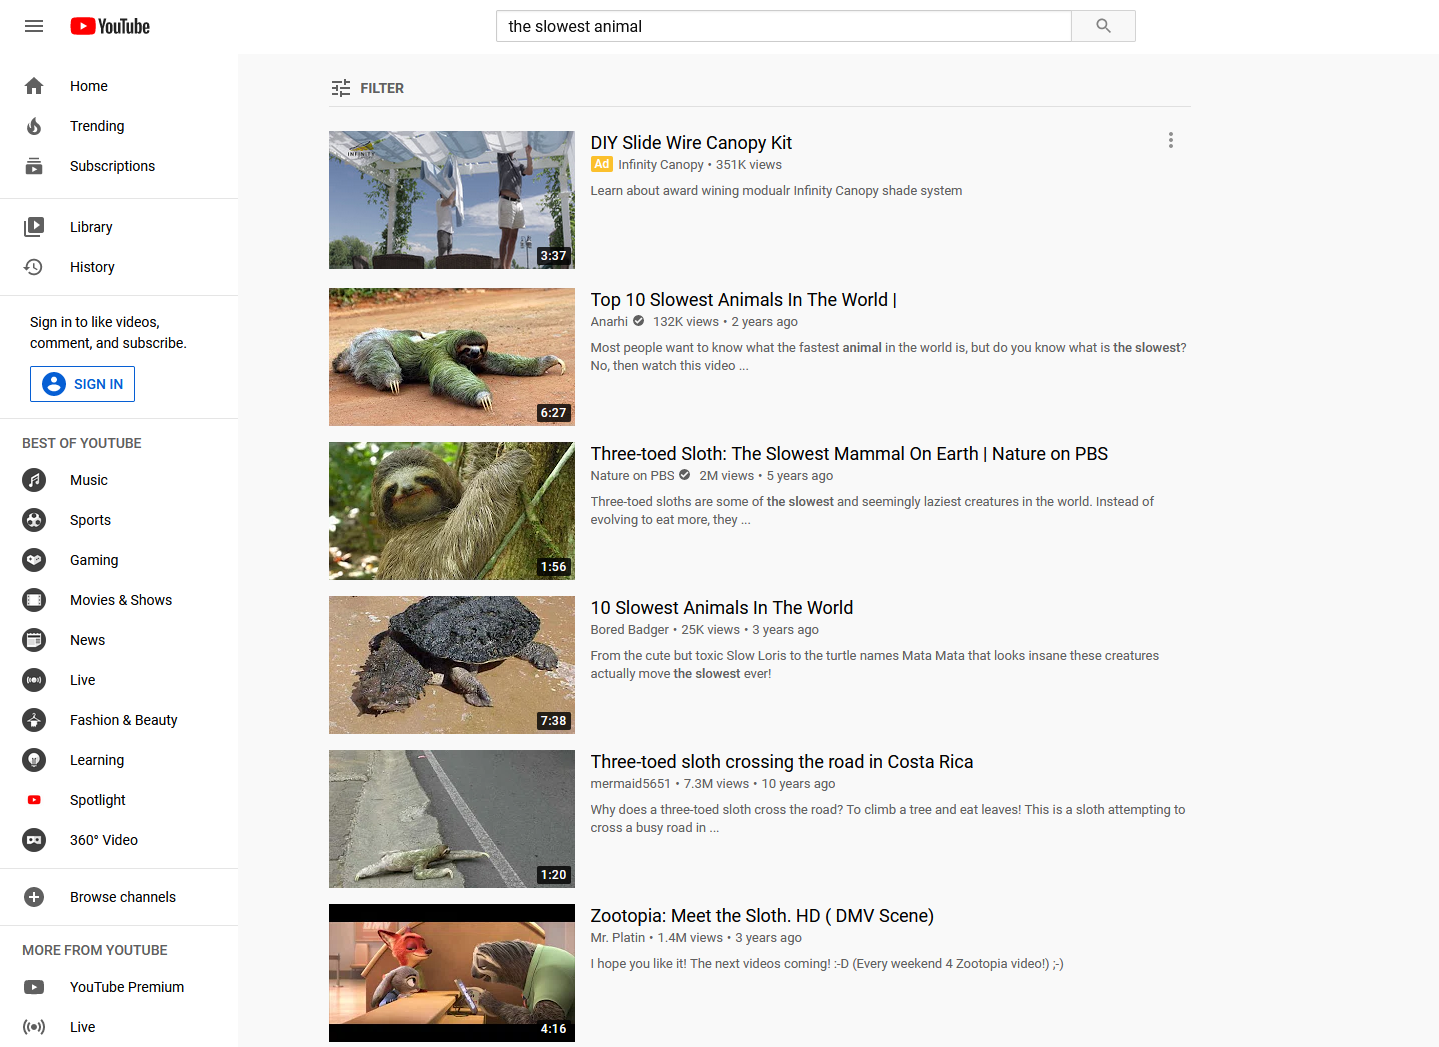 YouTube search for slowest animal